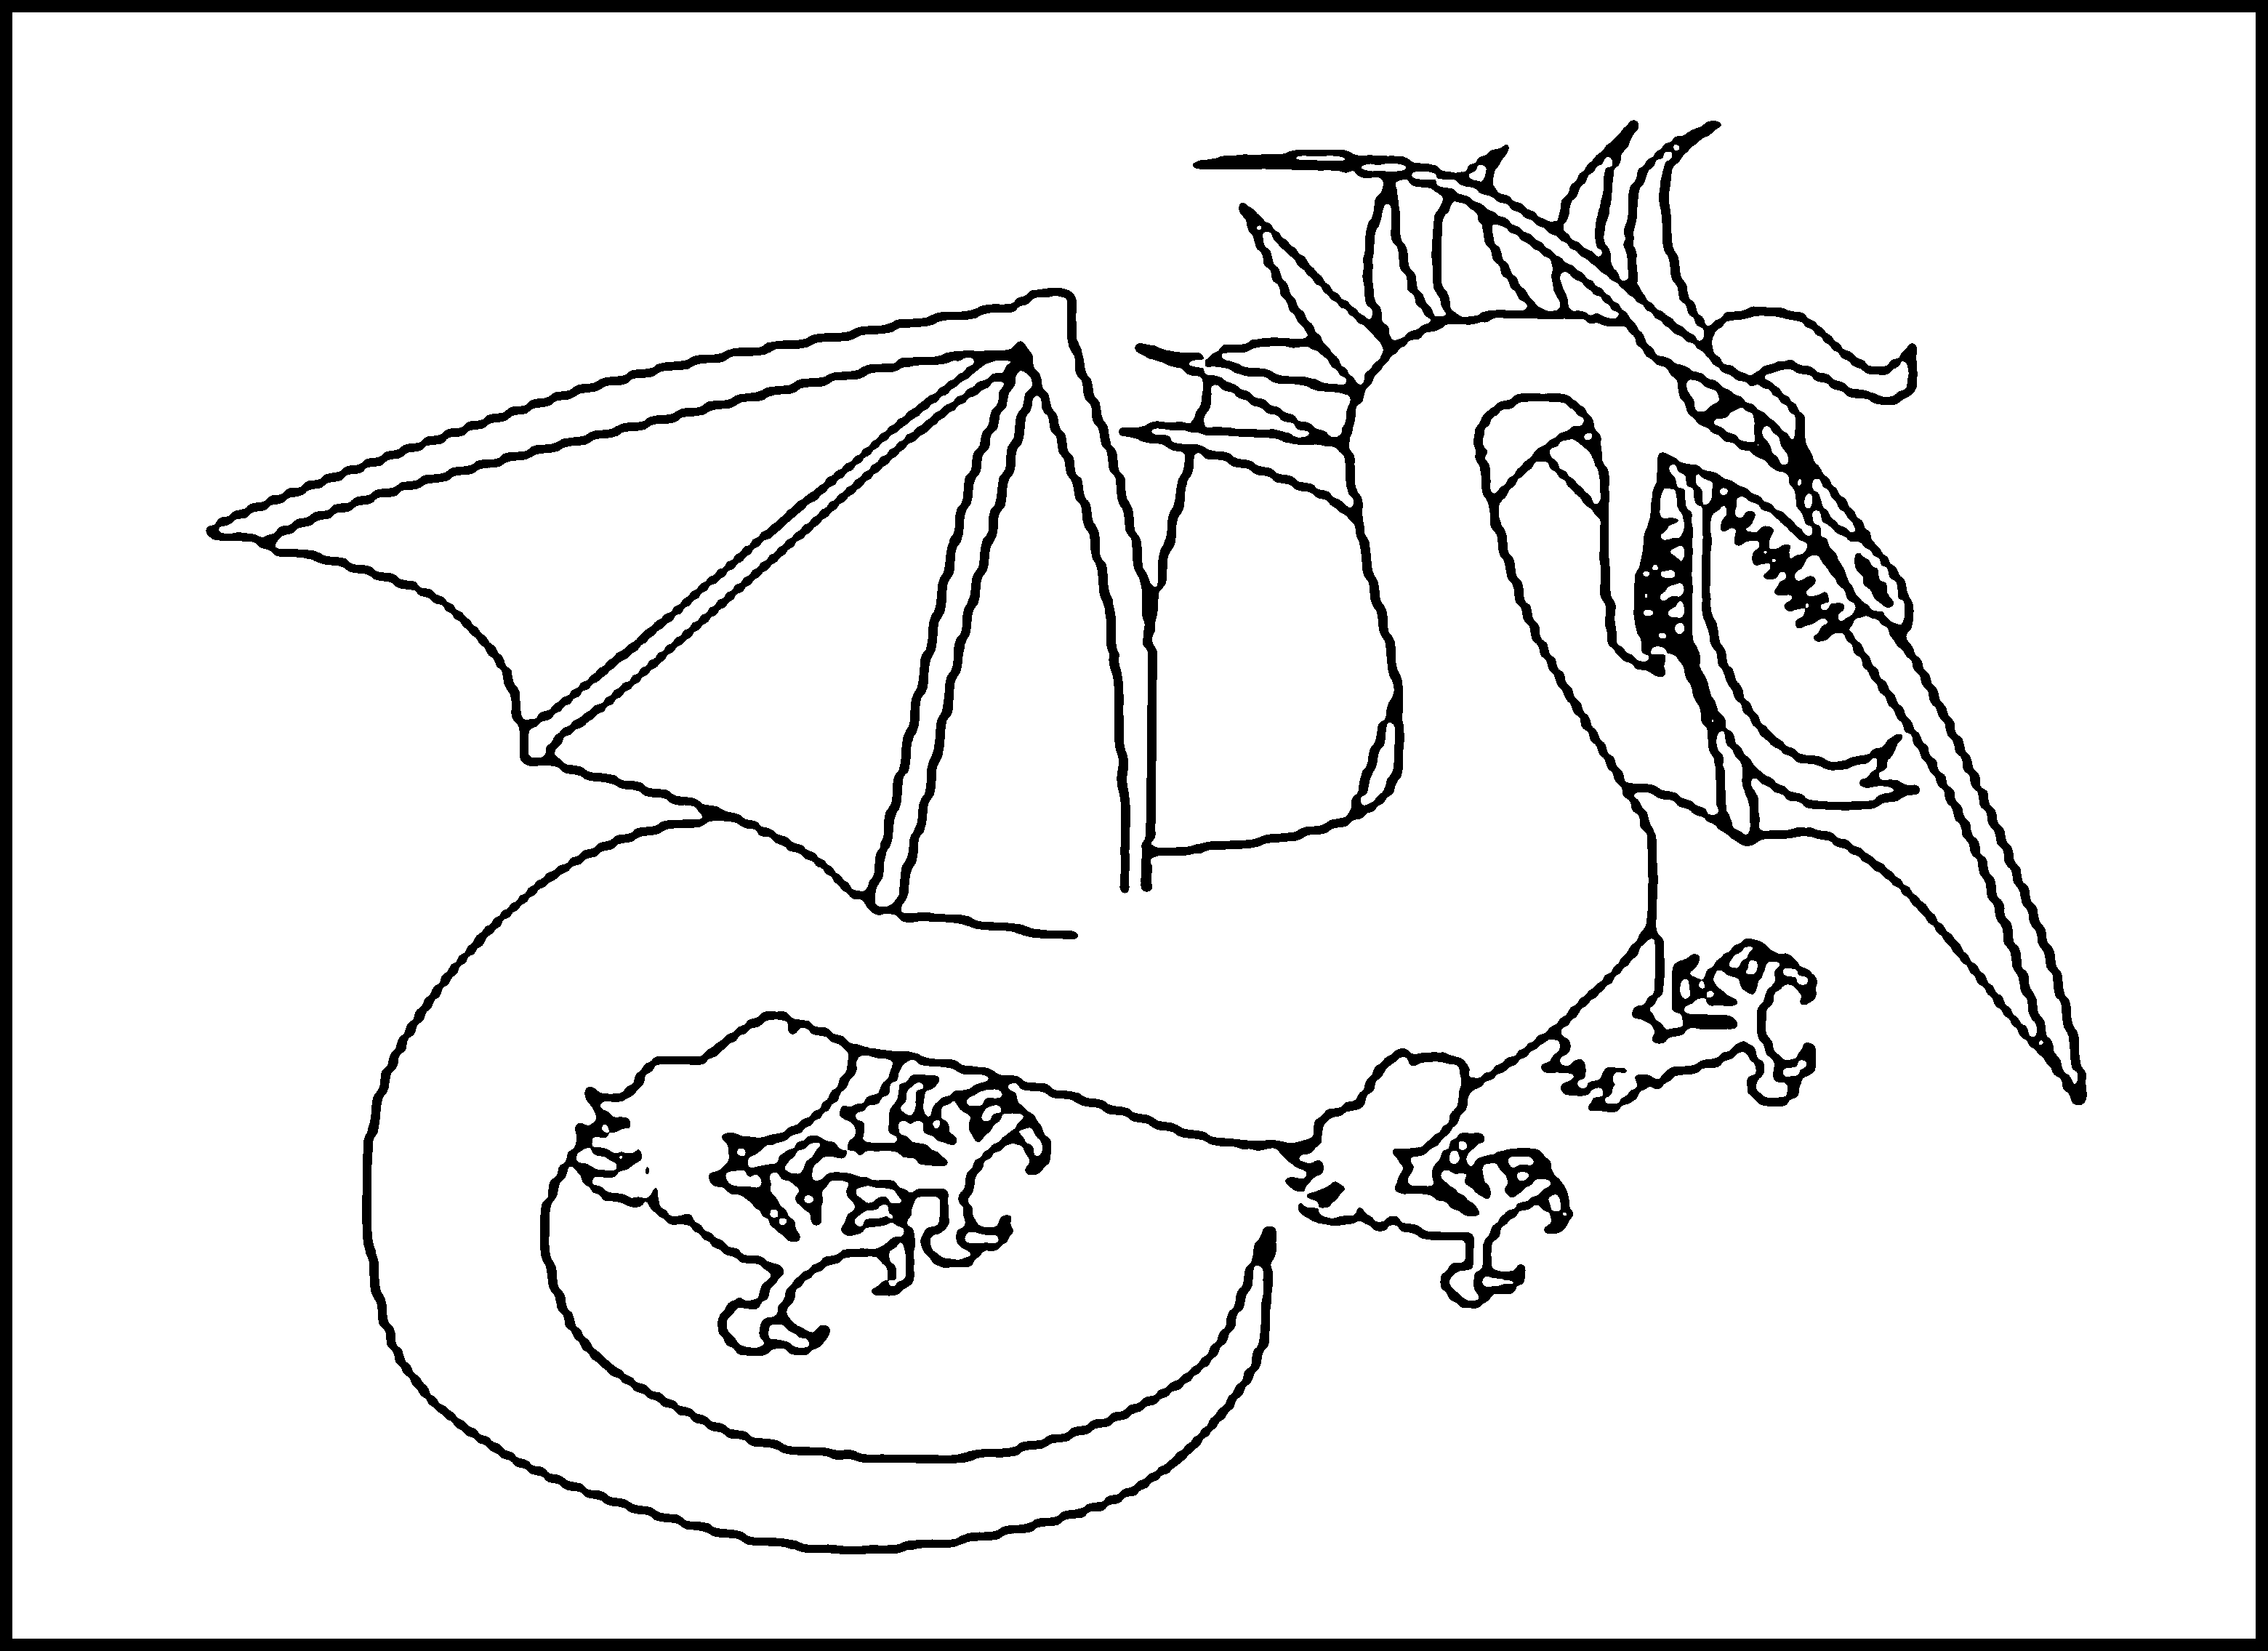 Free Printable Dragon Coloring Pages For Kids Free Printable Coloring Pages Printable